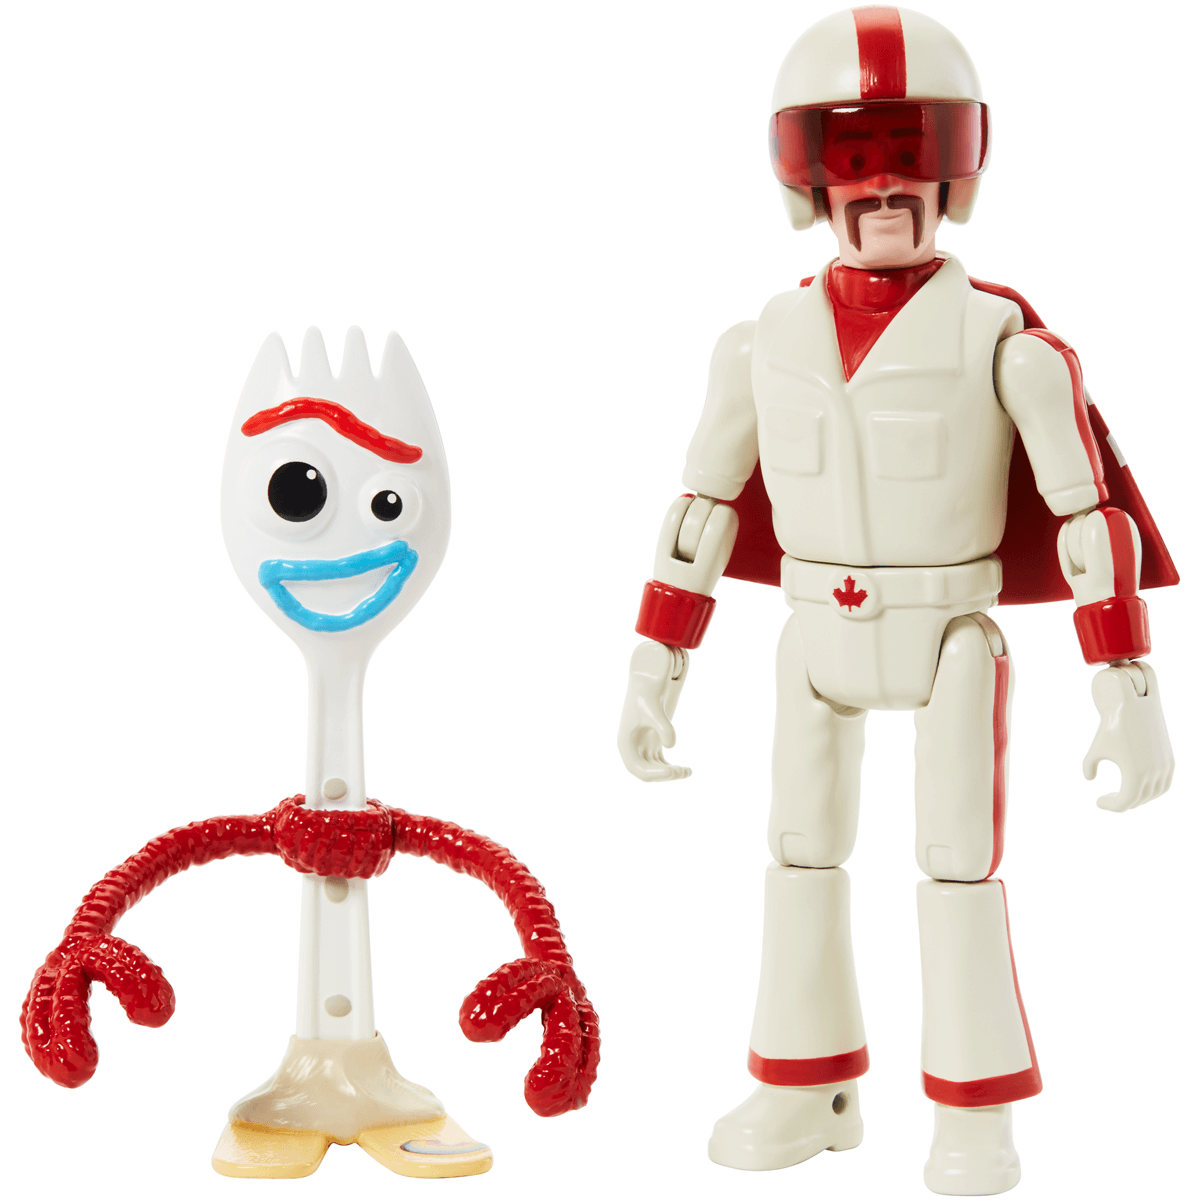 Disney Pixar Toy Story 4 17 cm Figure - Forky and Duke Caboom